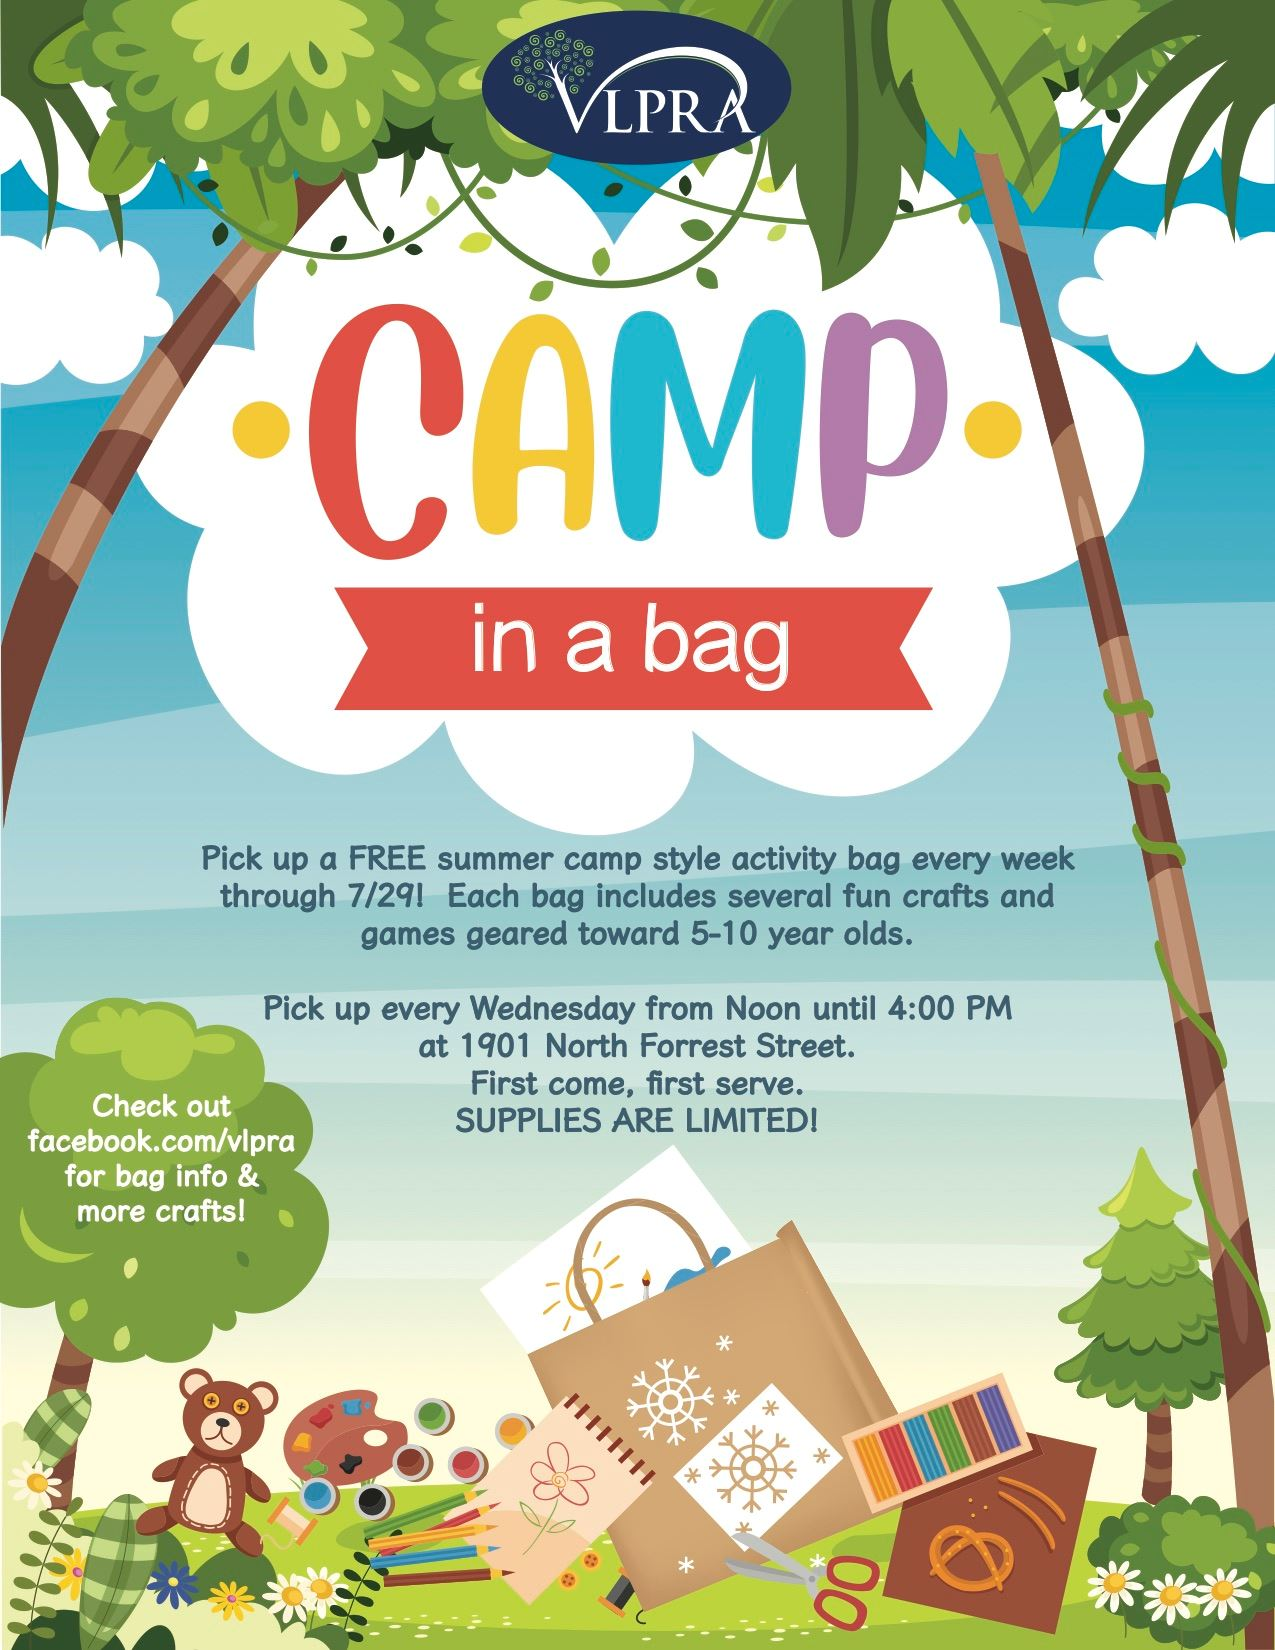 2020 Camp in a Bag Flyer